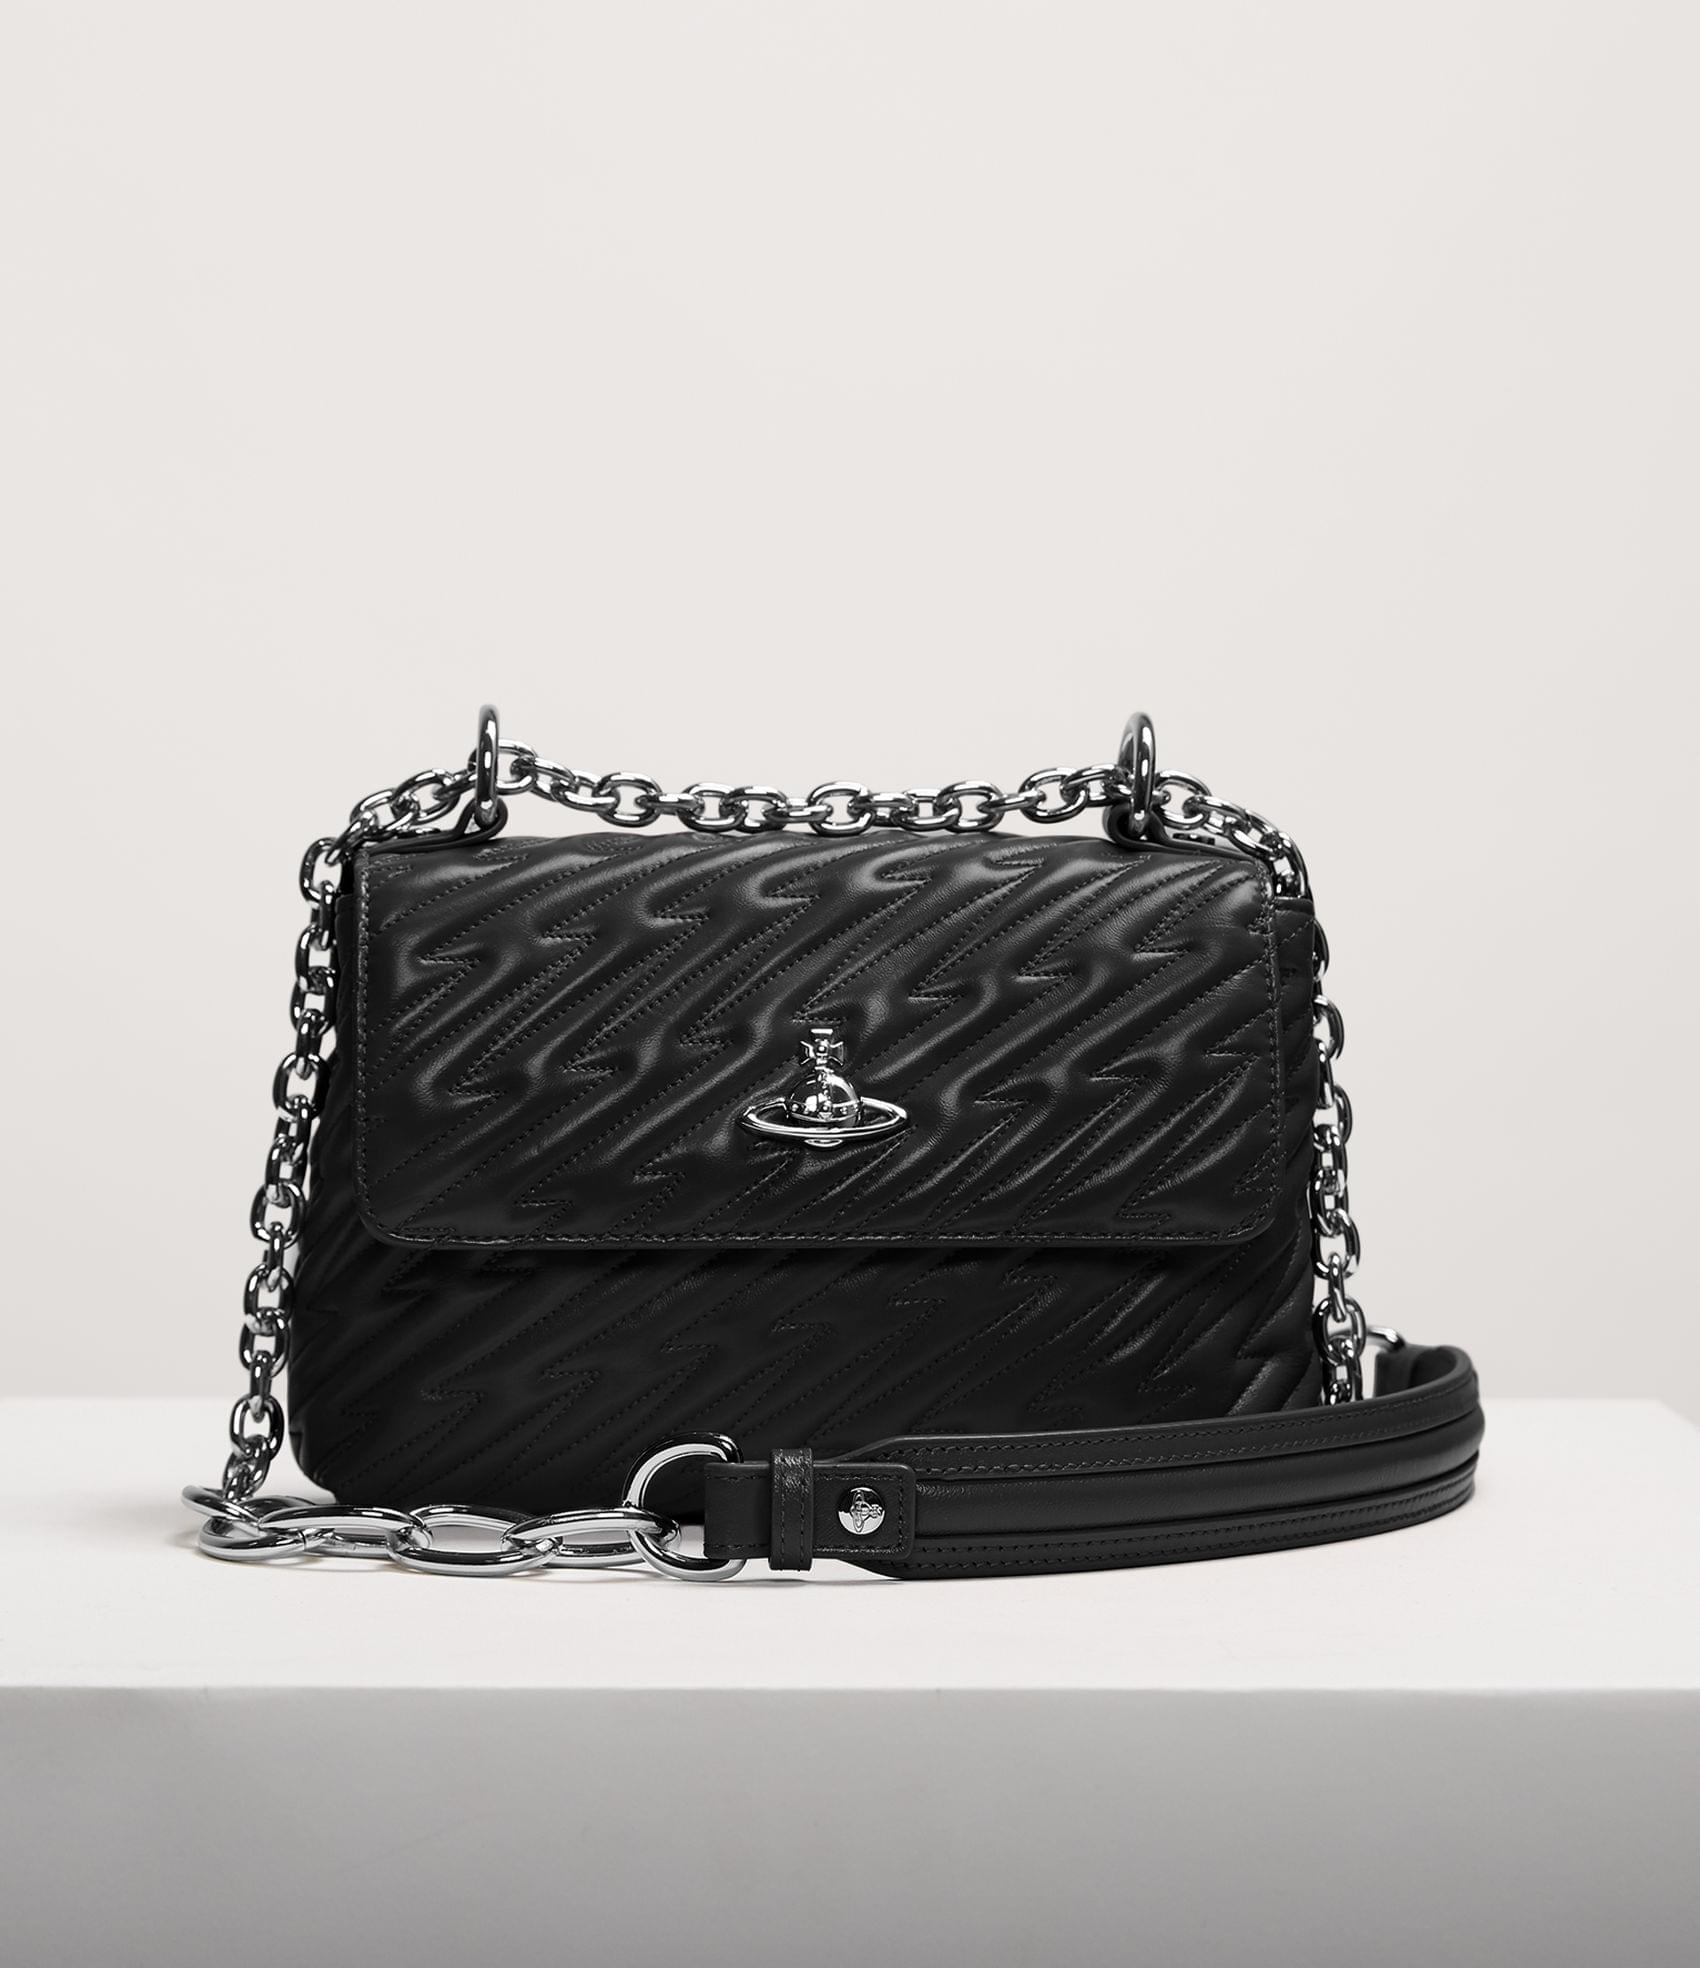 Vivienne Westwood COVENTRY MEDIUM HANDBAG BLACK